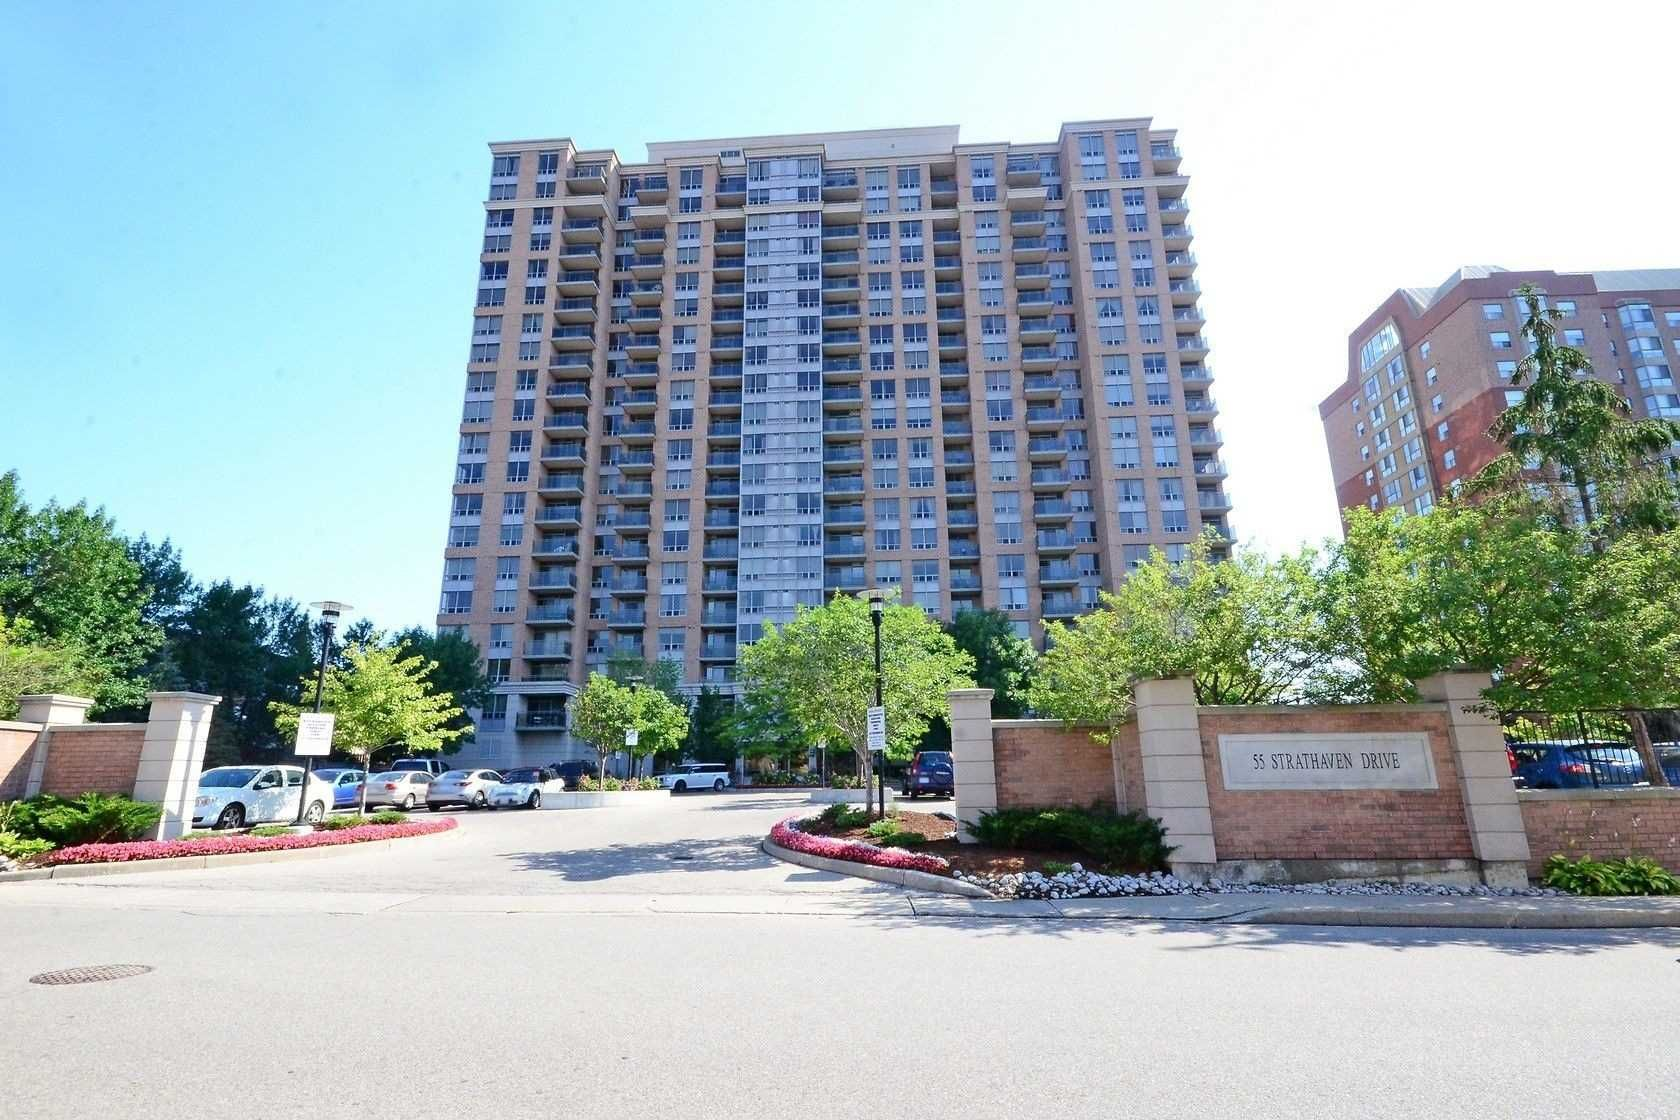 55 Strathaven Dr. This condo at The Residences of Strathaven Condos is located in Hurontario, Mississauga